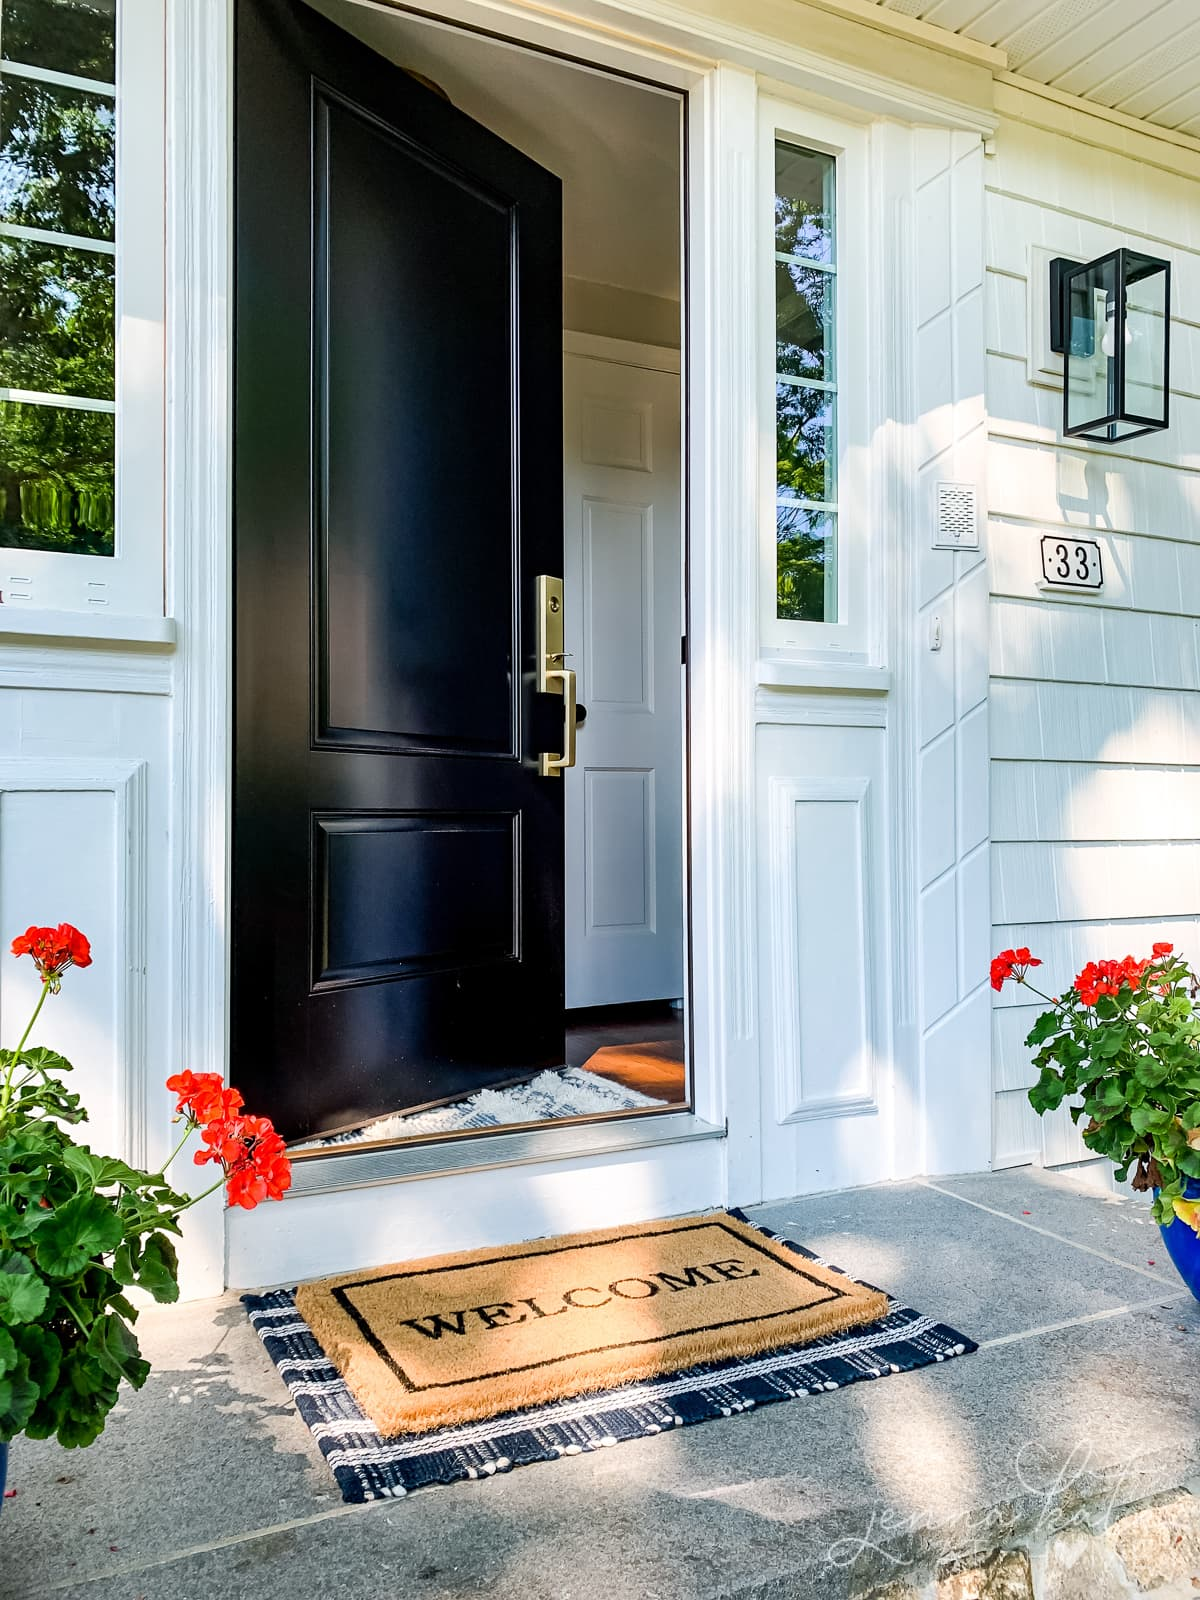 The best front door color for resale value is black